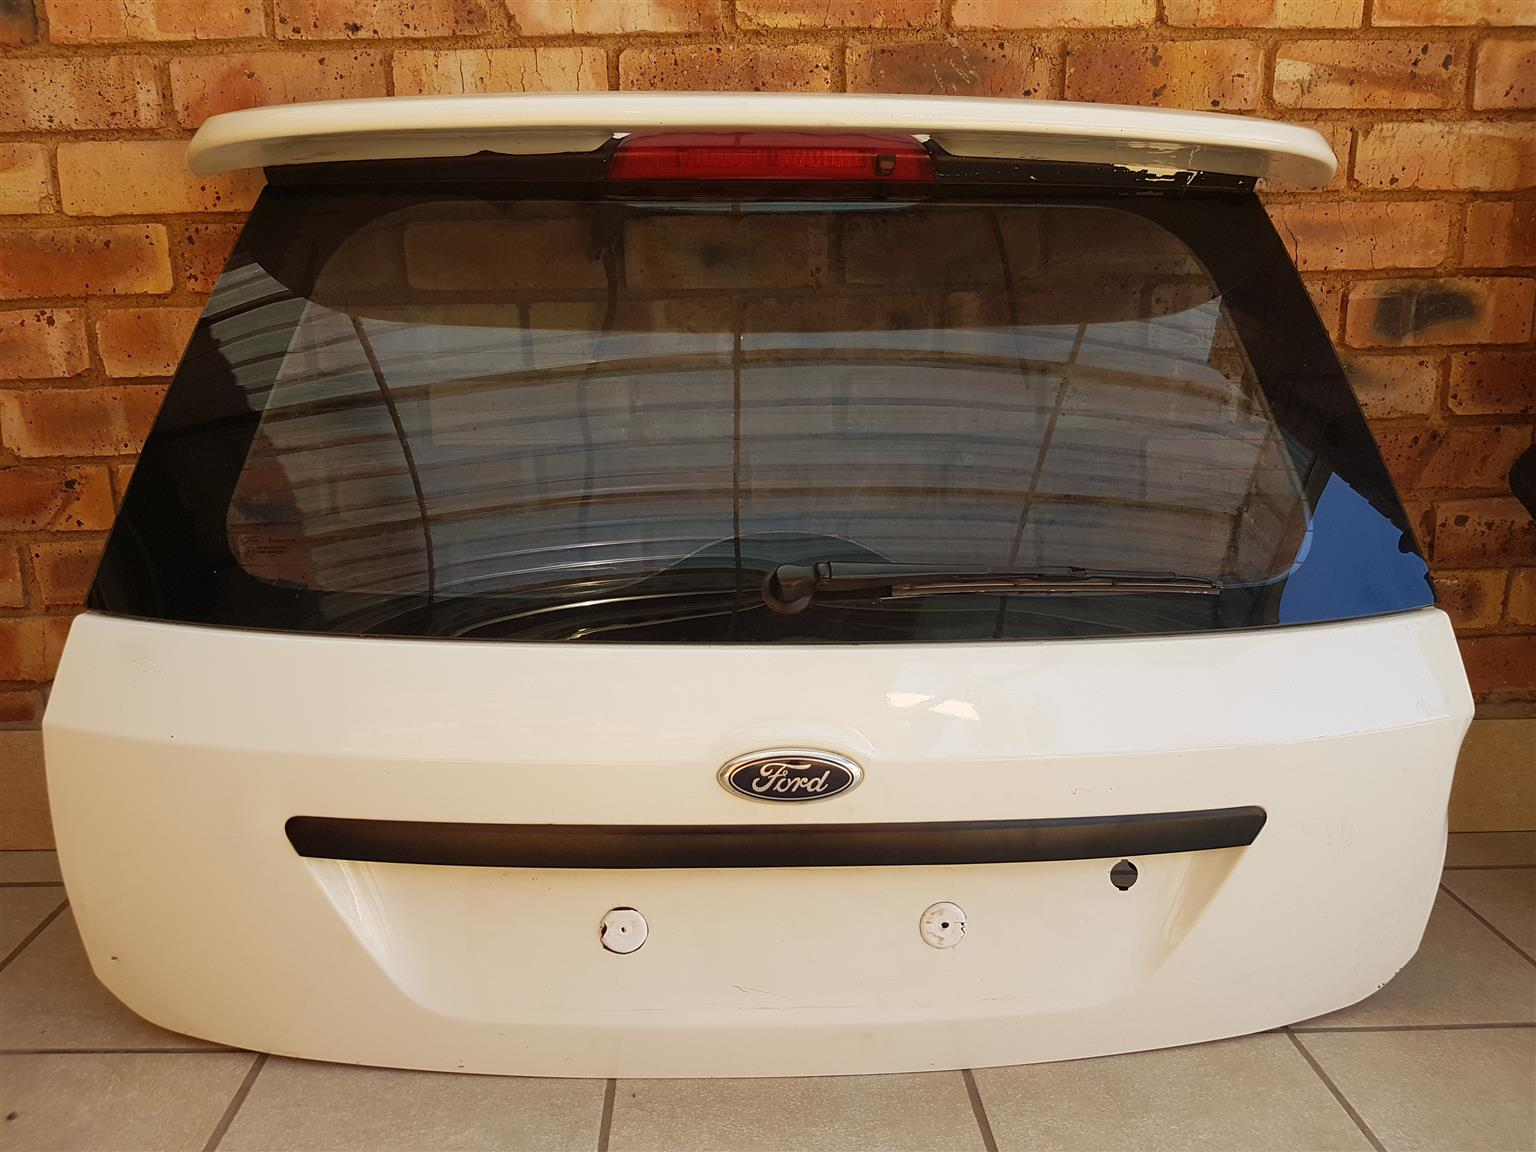 Ford Fiesta Tailgate and Rear Bumper